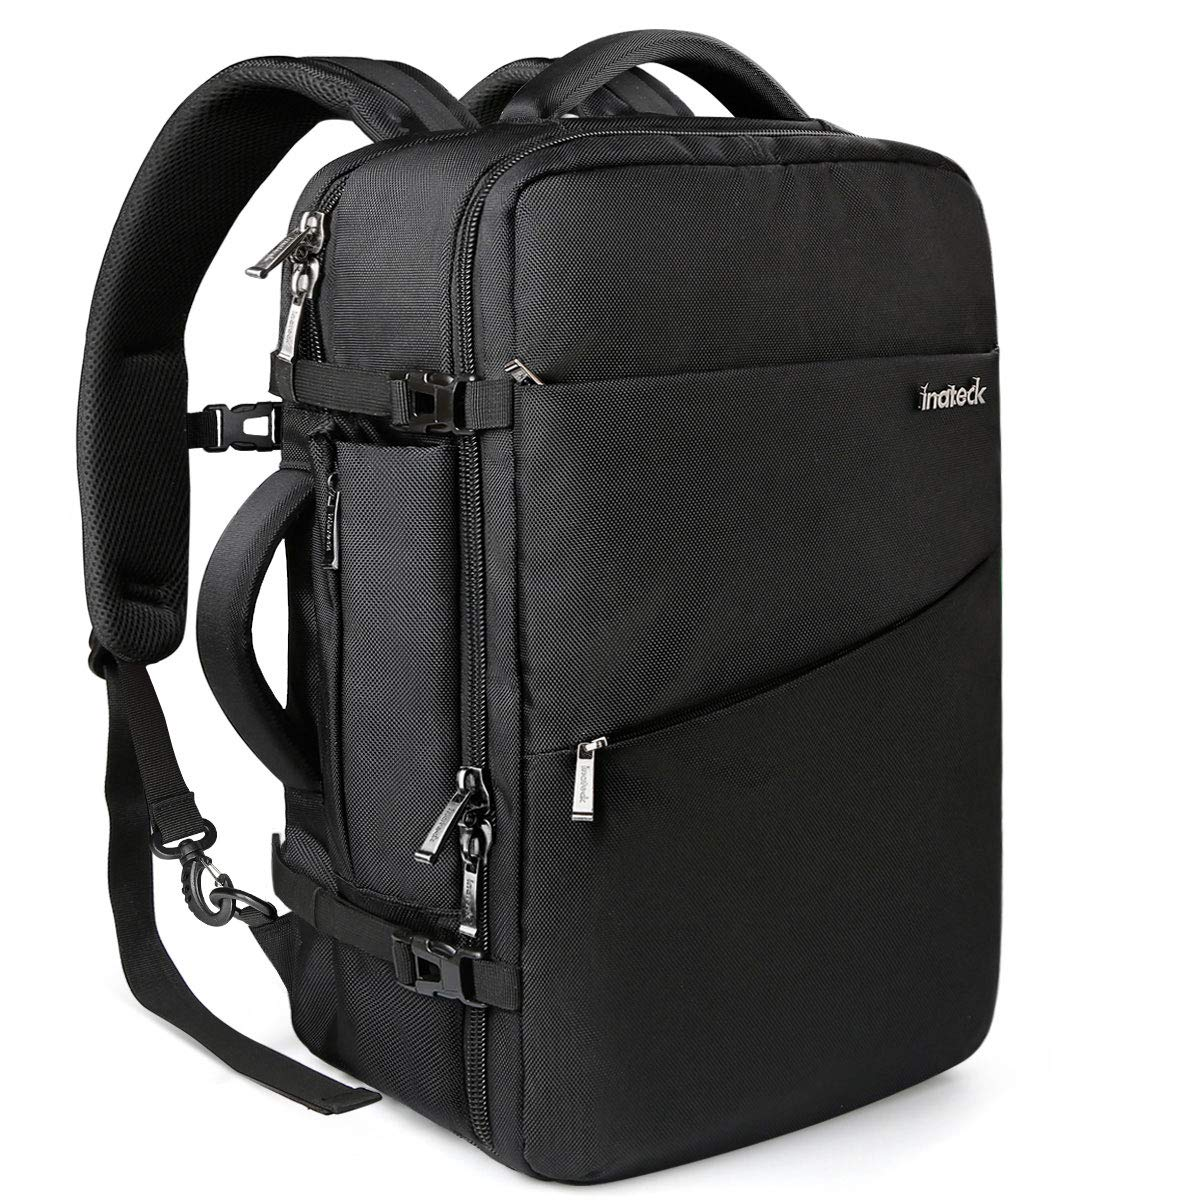 Inateck Anti Theft Backpack